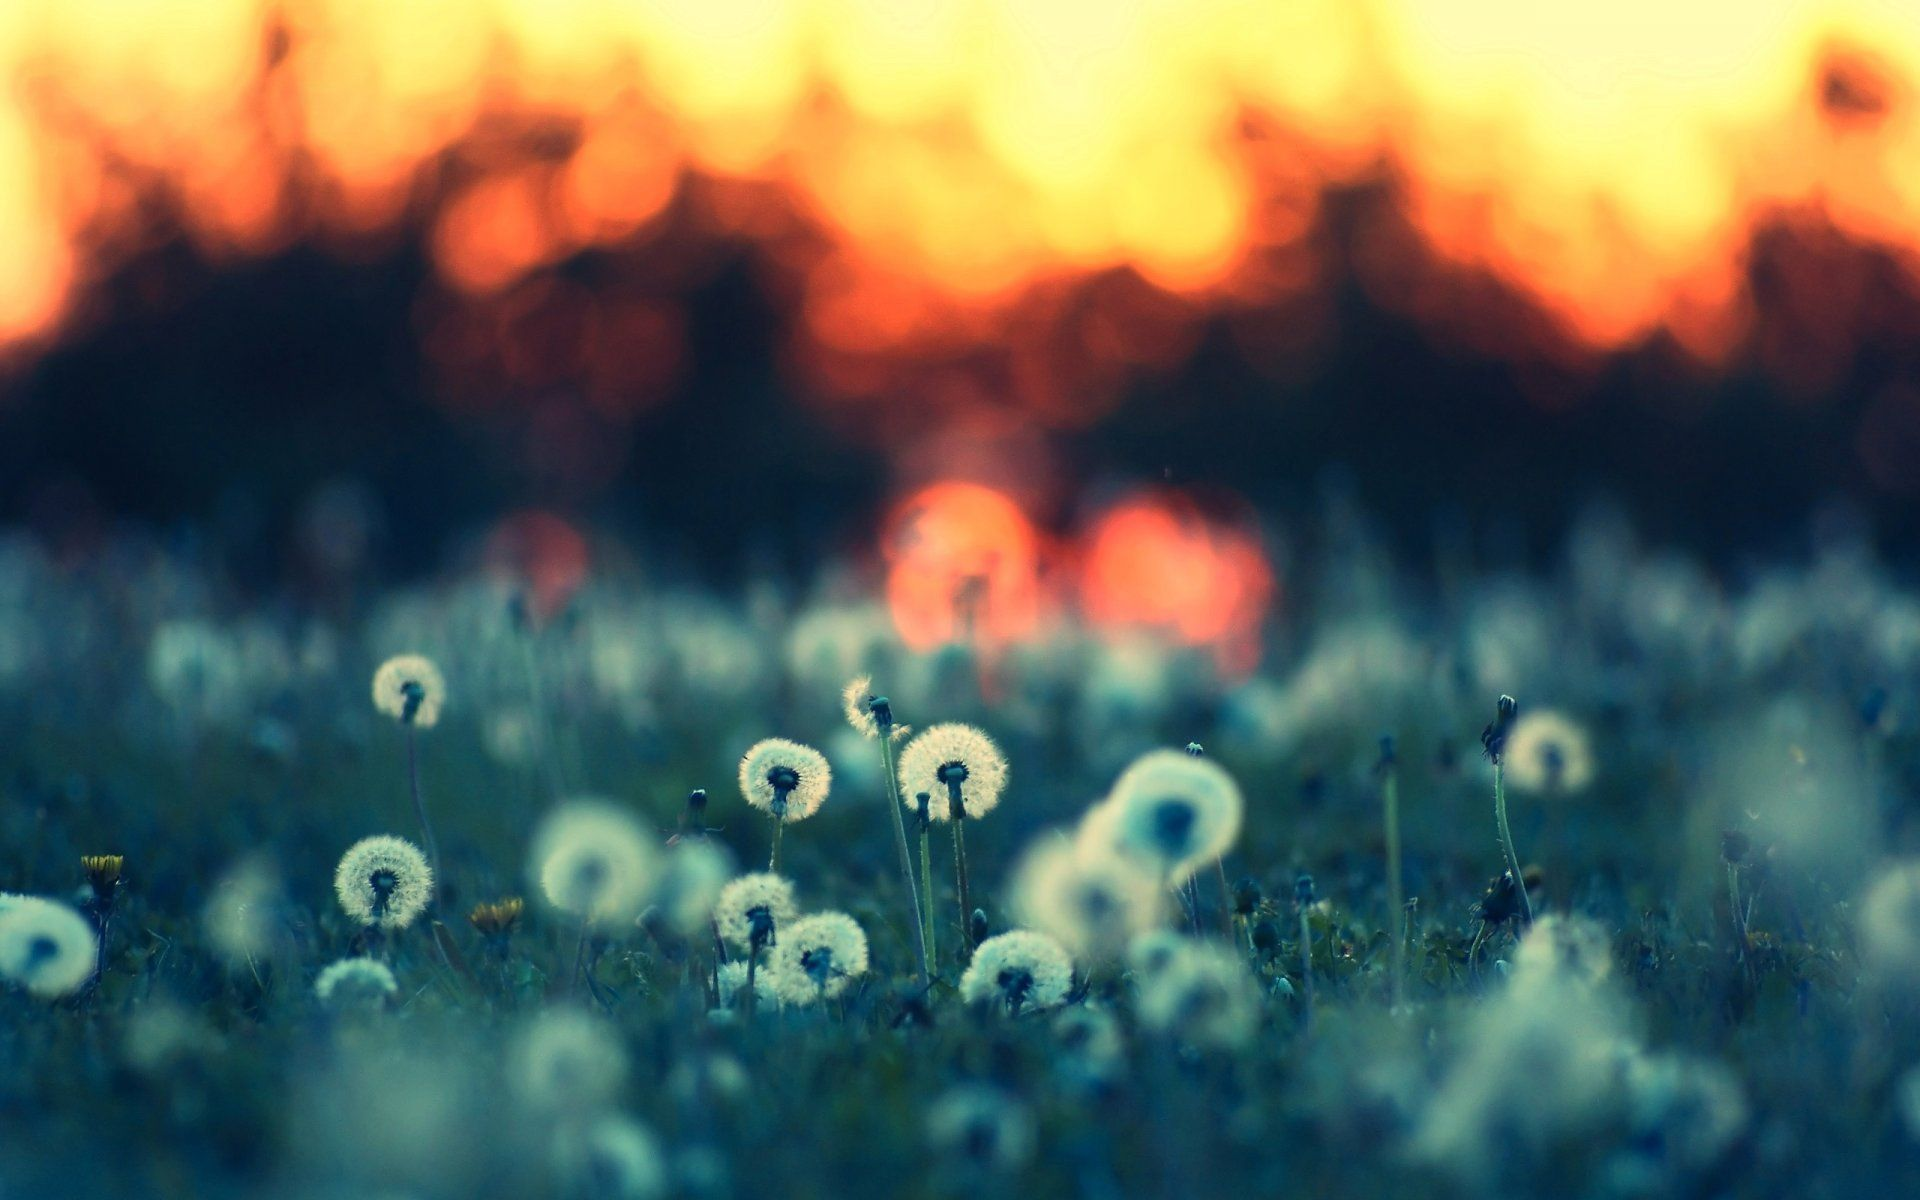 Cute Summer Iphone Wallpapers: Summer Nights Wallpaper Widescreen With High Definition